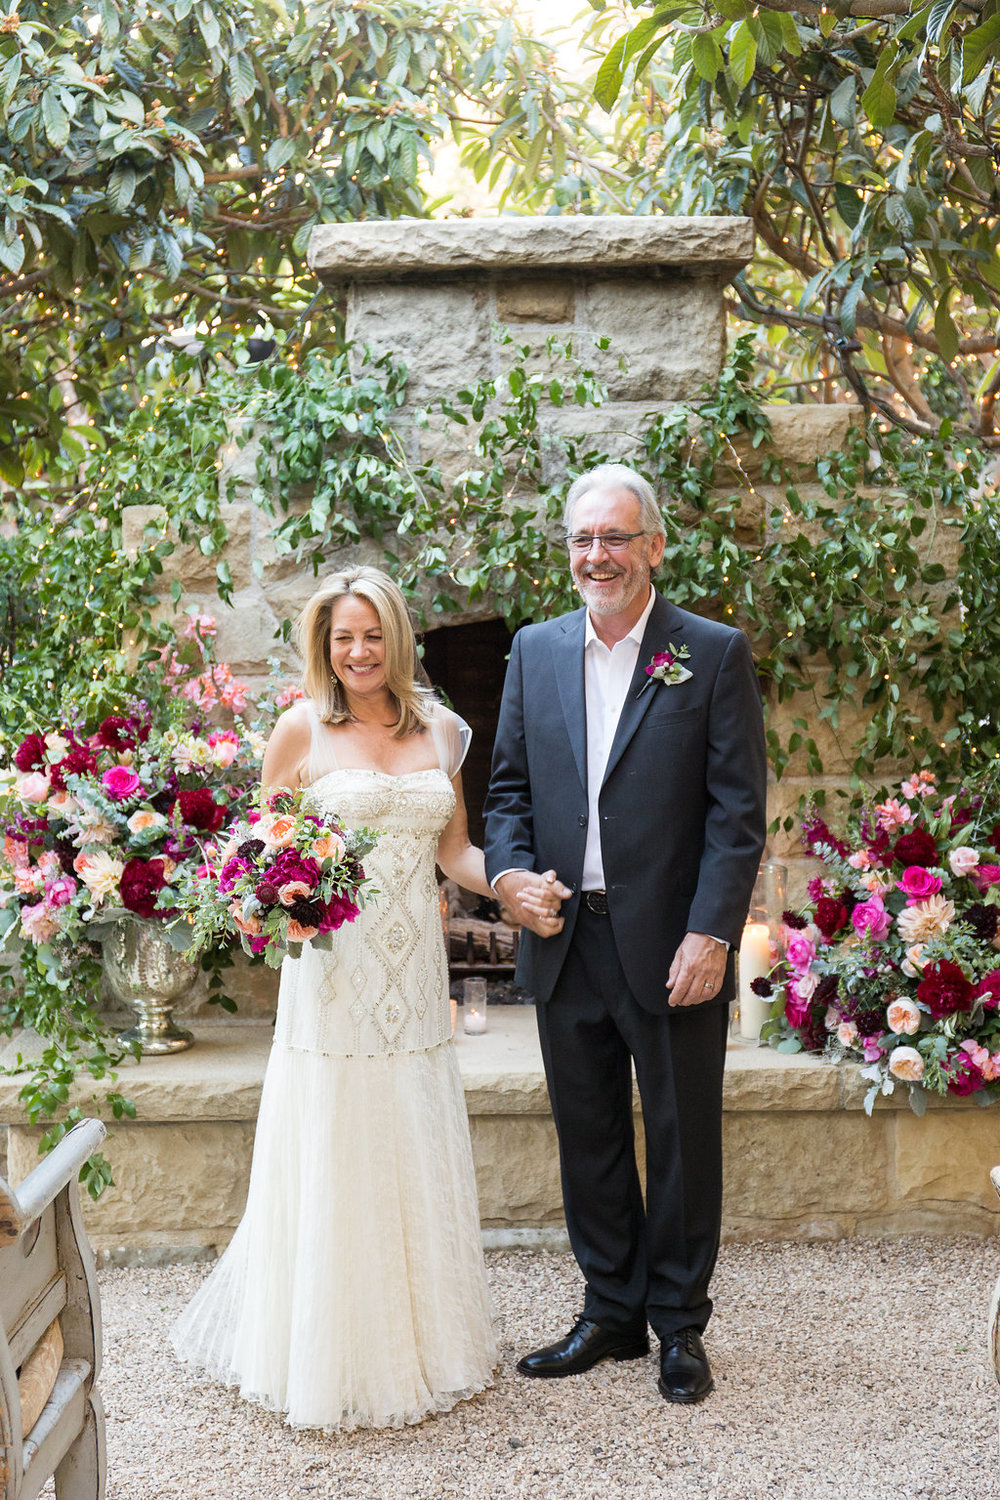 Barbara Mousouris Wedding Officiate San Ysidro Ranch Santa Barbara Wedding Style Planning Laura Sangas